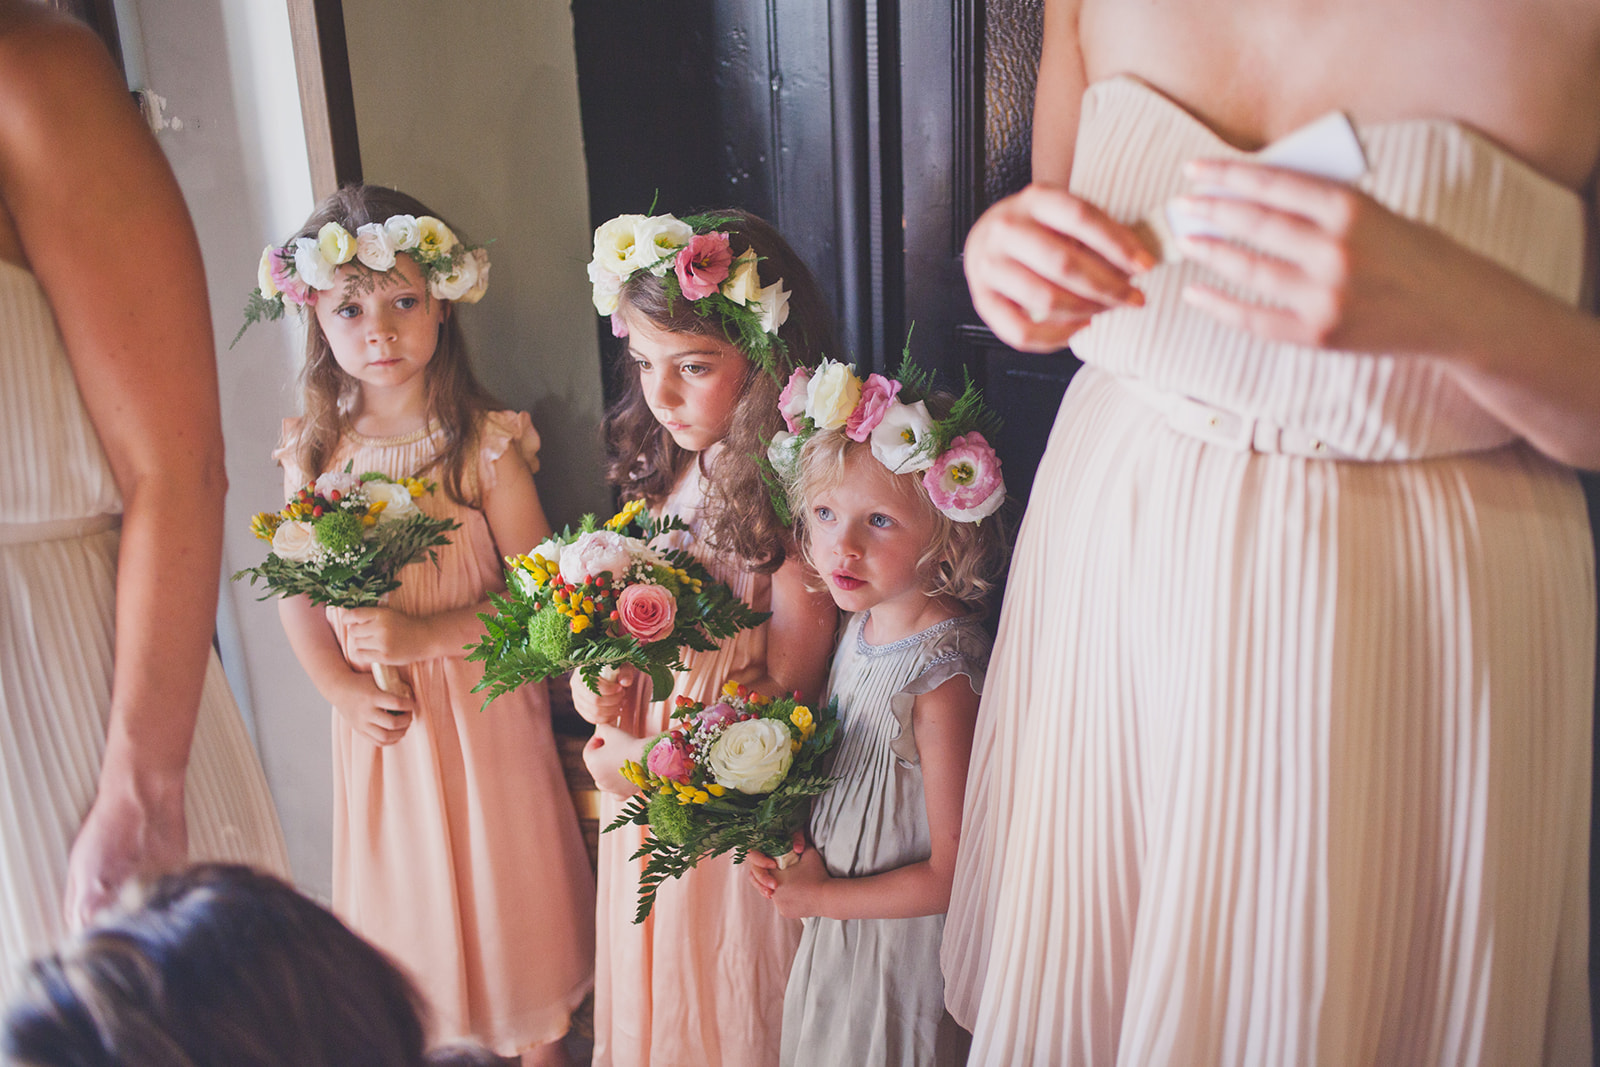 flowergirls stand waiting to go into church. destination wedding photography in italy, rome. stop motion wedding films